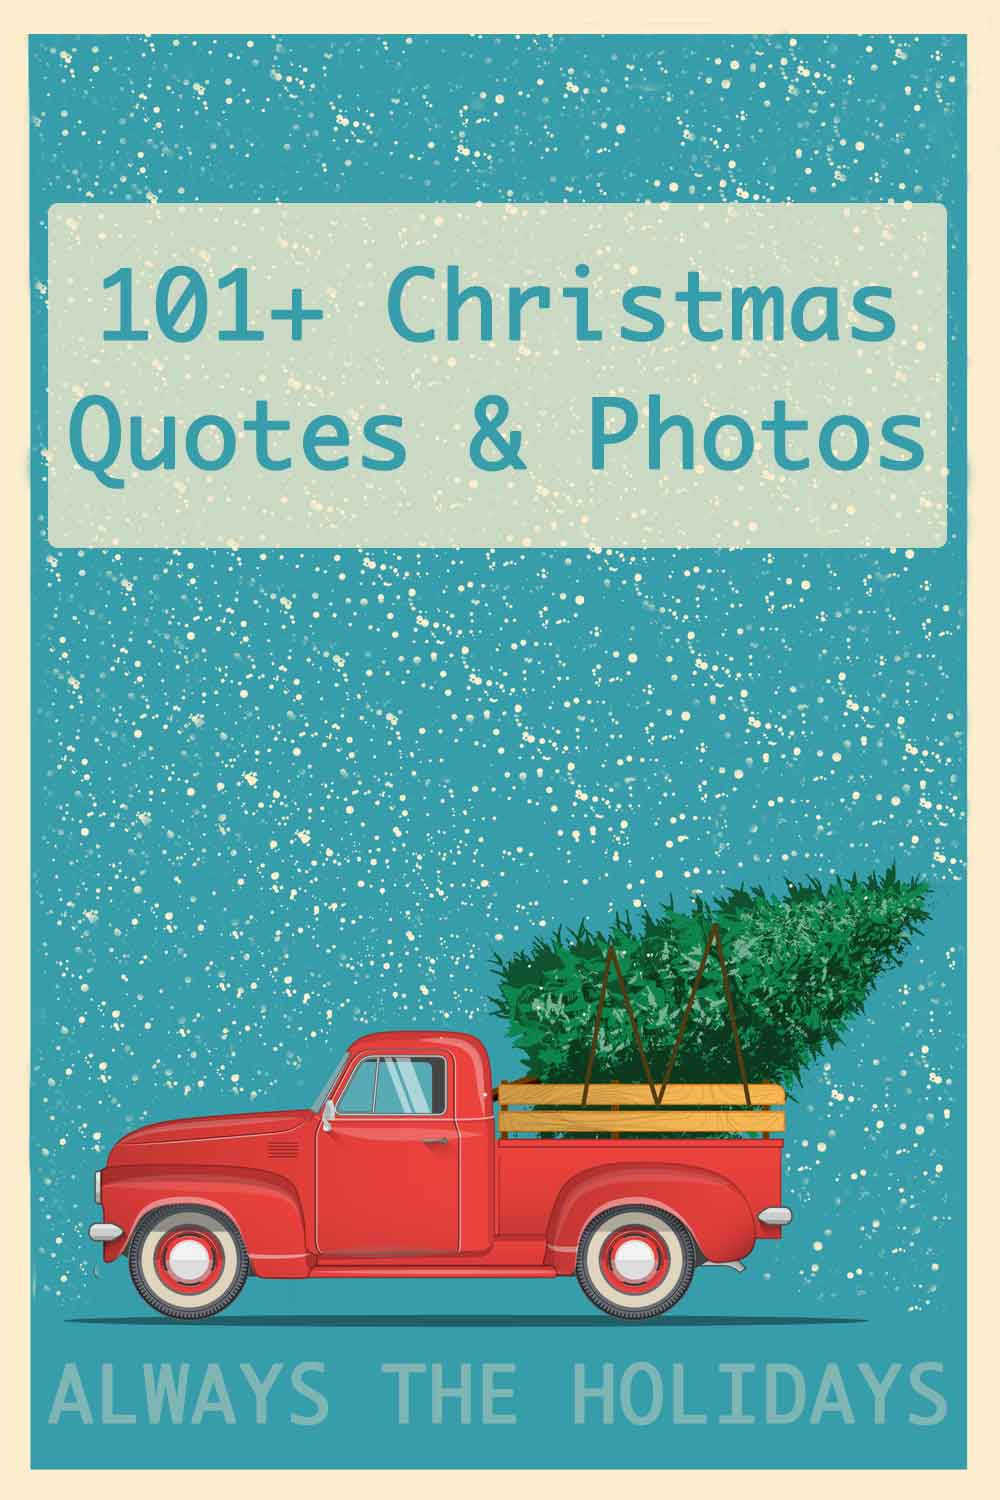 """A red truck carrying a Christmas tree with against a blue background with snow falling around it, with the words """"101+ Christmas quotes and photos"""" above it."""